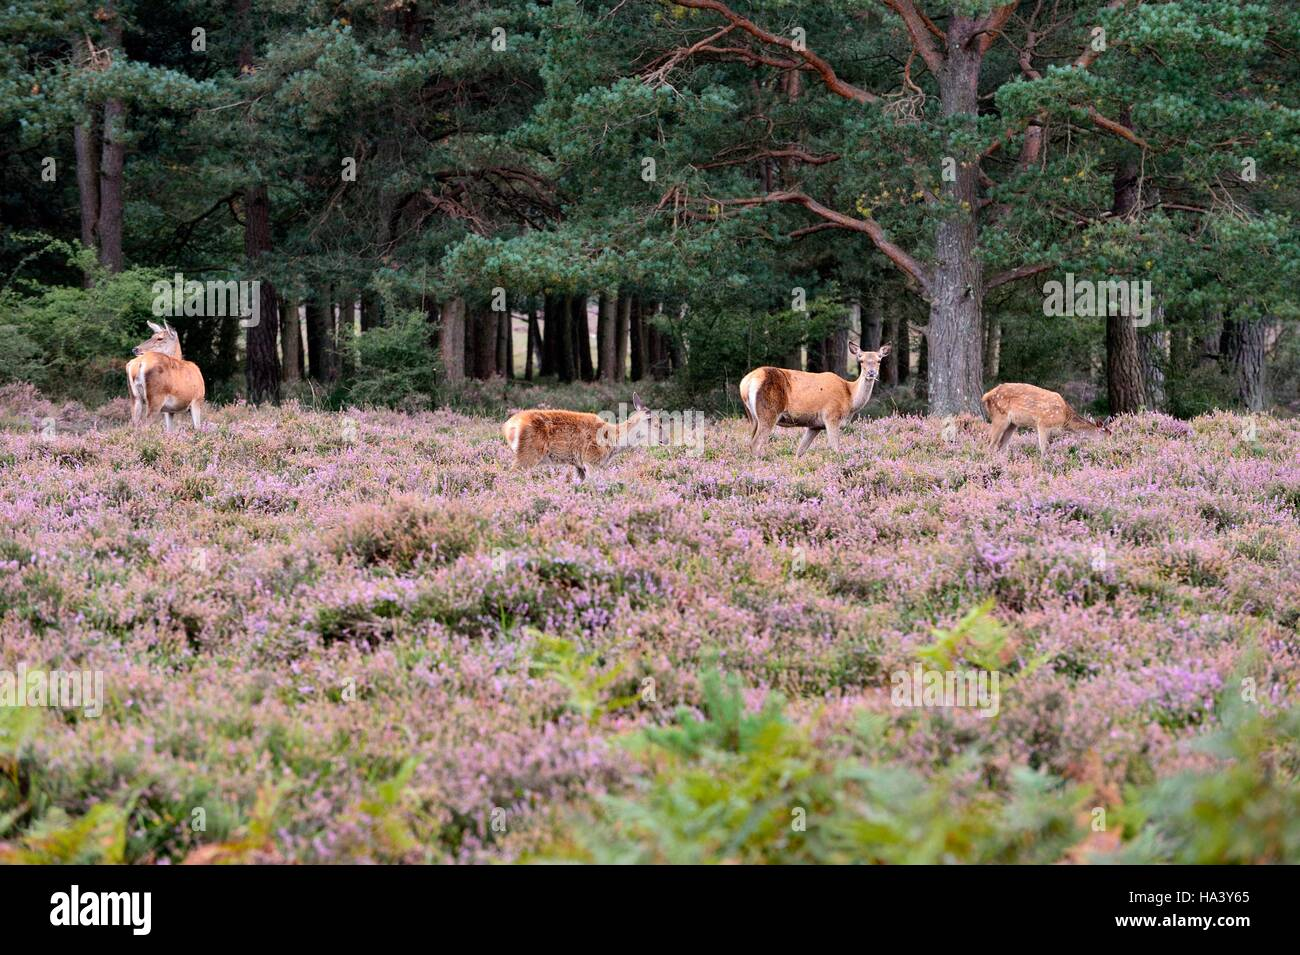 Wild Deer keep a look out grazing amongst the flowering heather - Stock Image